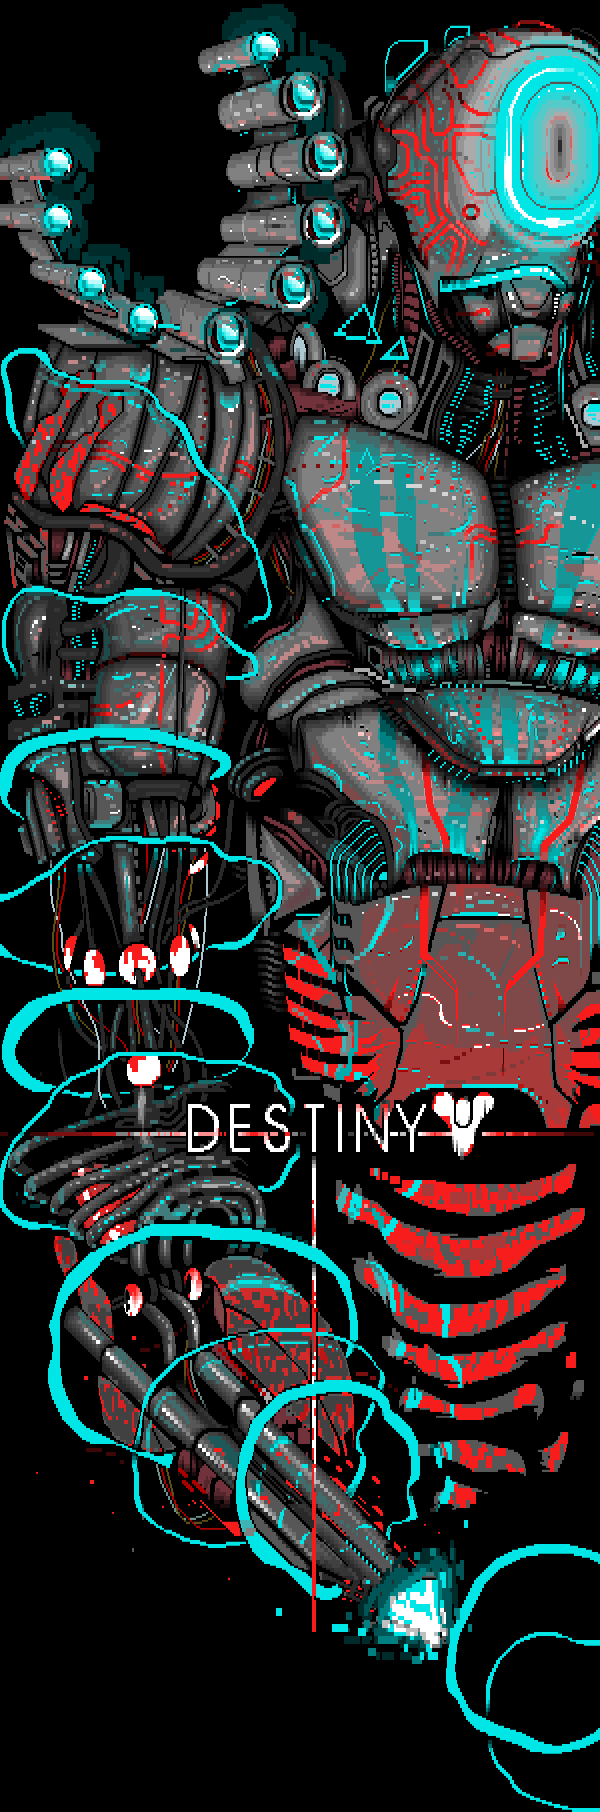 Destiny (Original Concept) by TCF